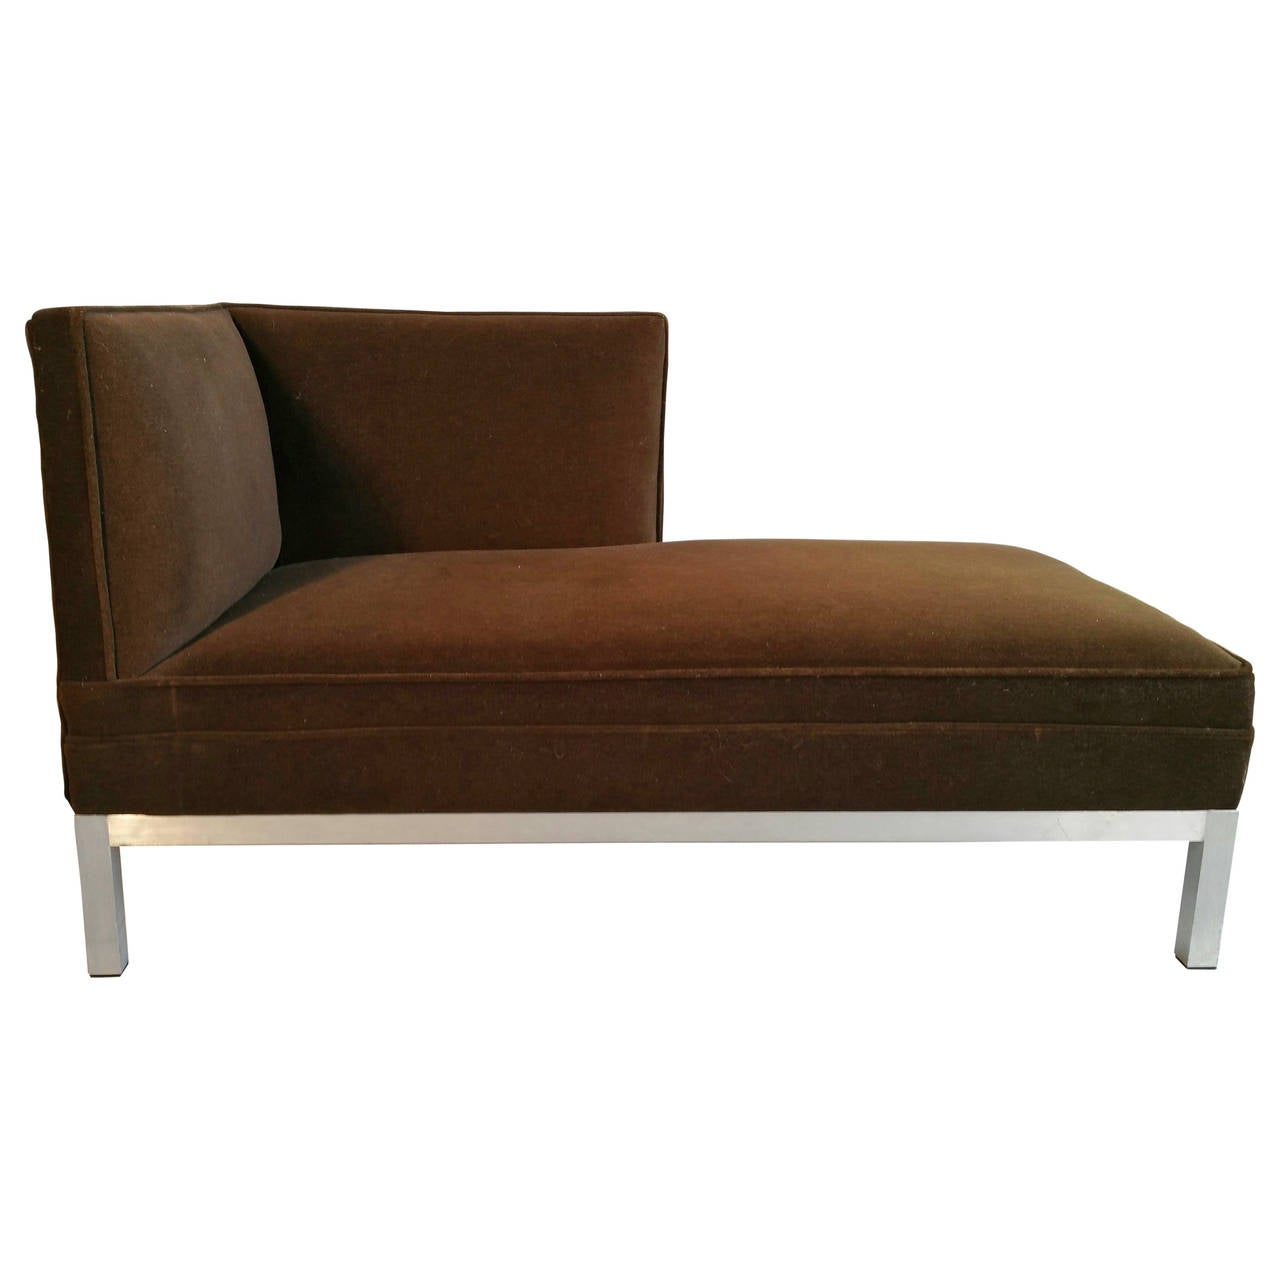 Modernist aluminum and velvet chaise lounge for sale at for Chaise lounge aluminum